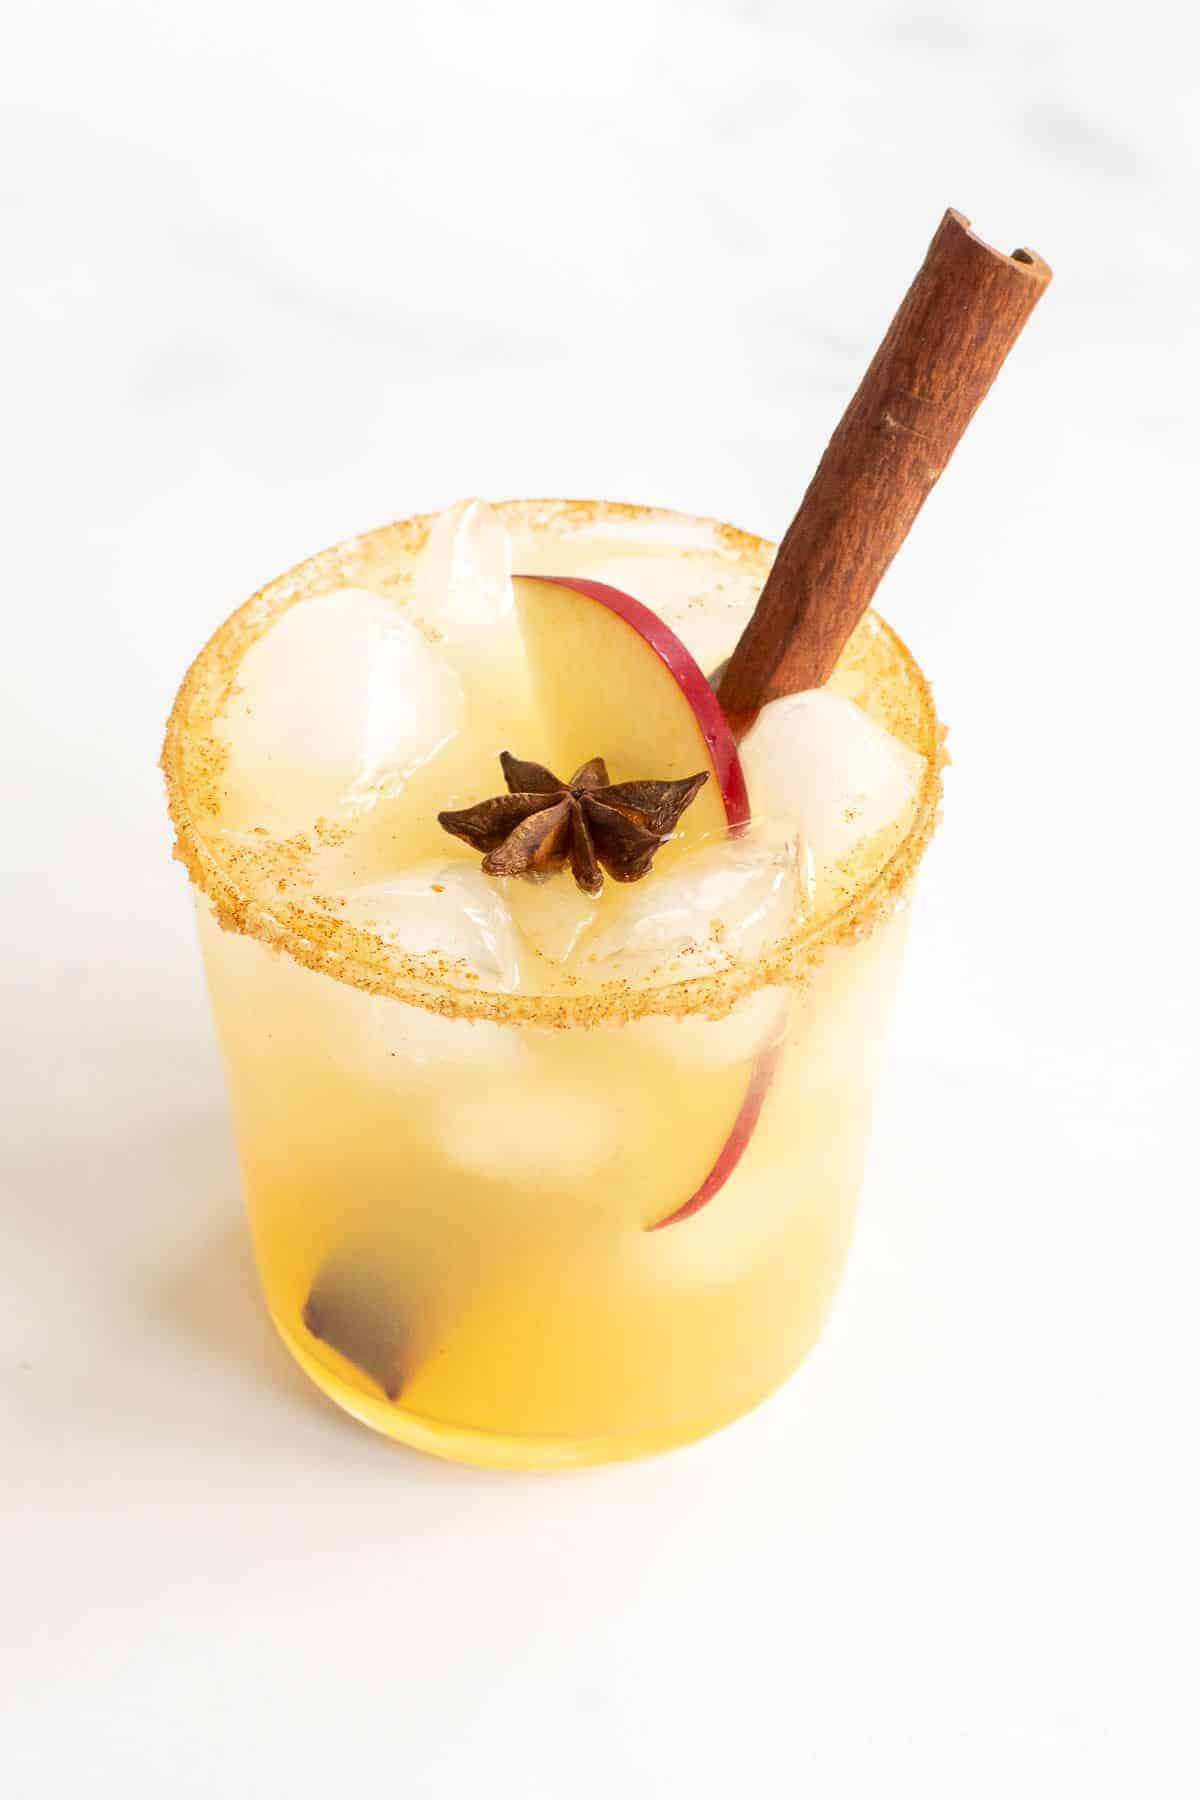 A clear glass with an apple cider margarita, rimmed in sugar and garnished with a cinnamon stick.